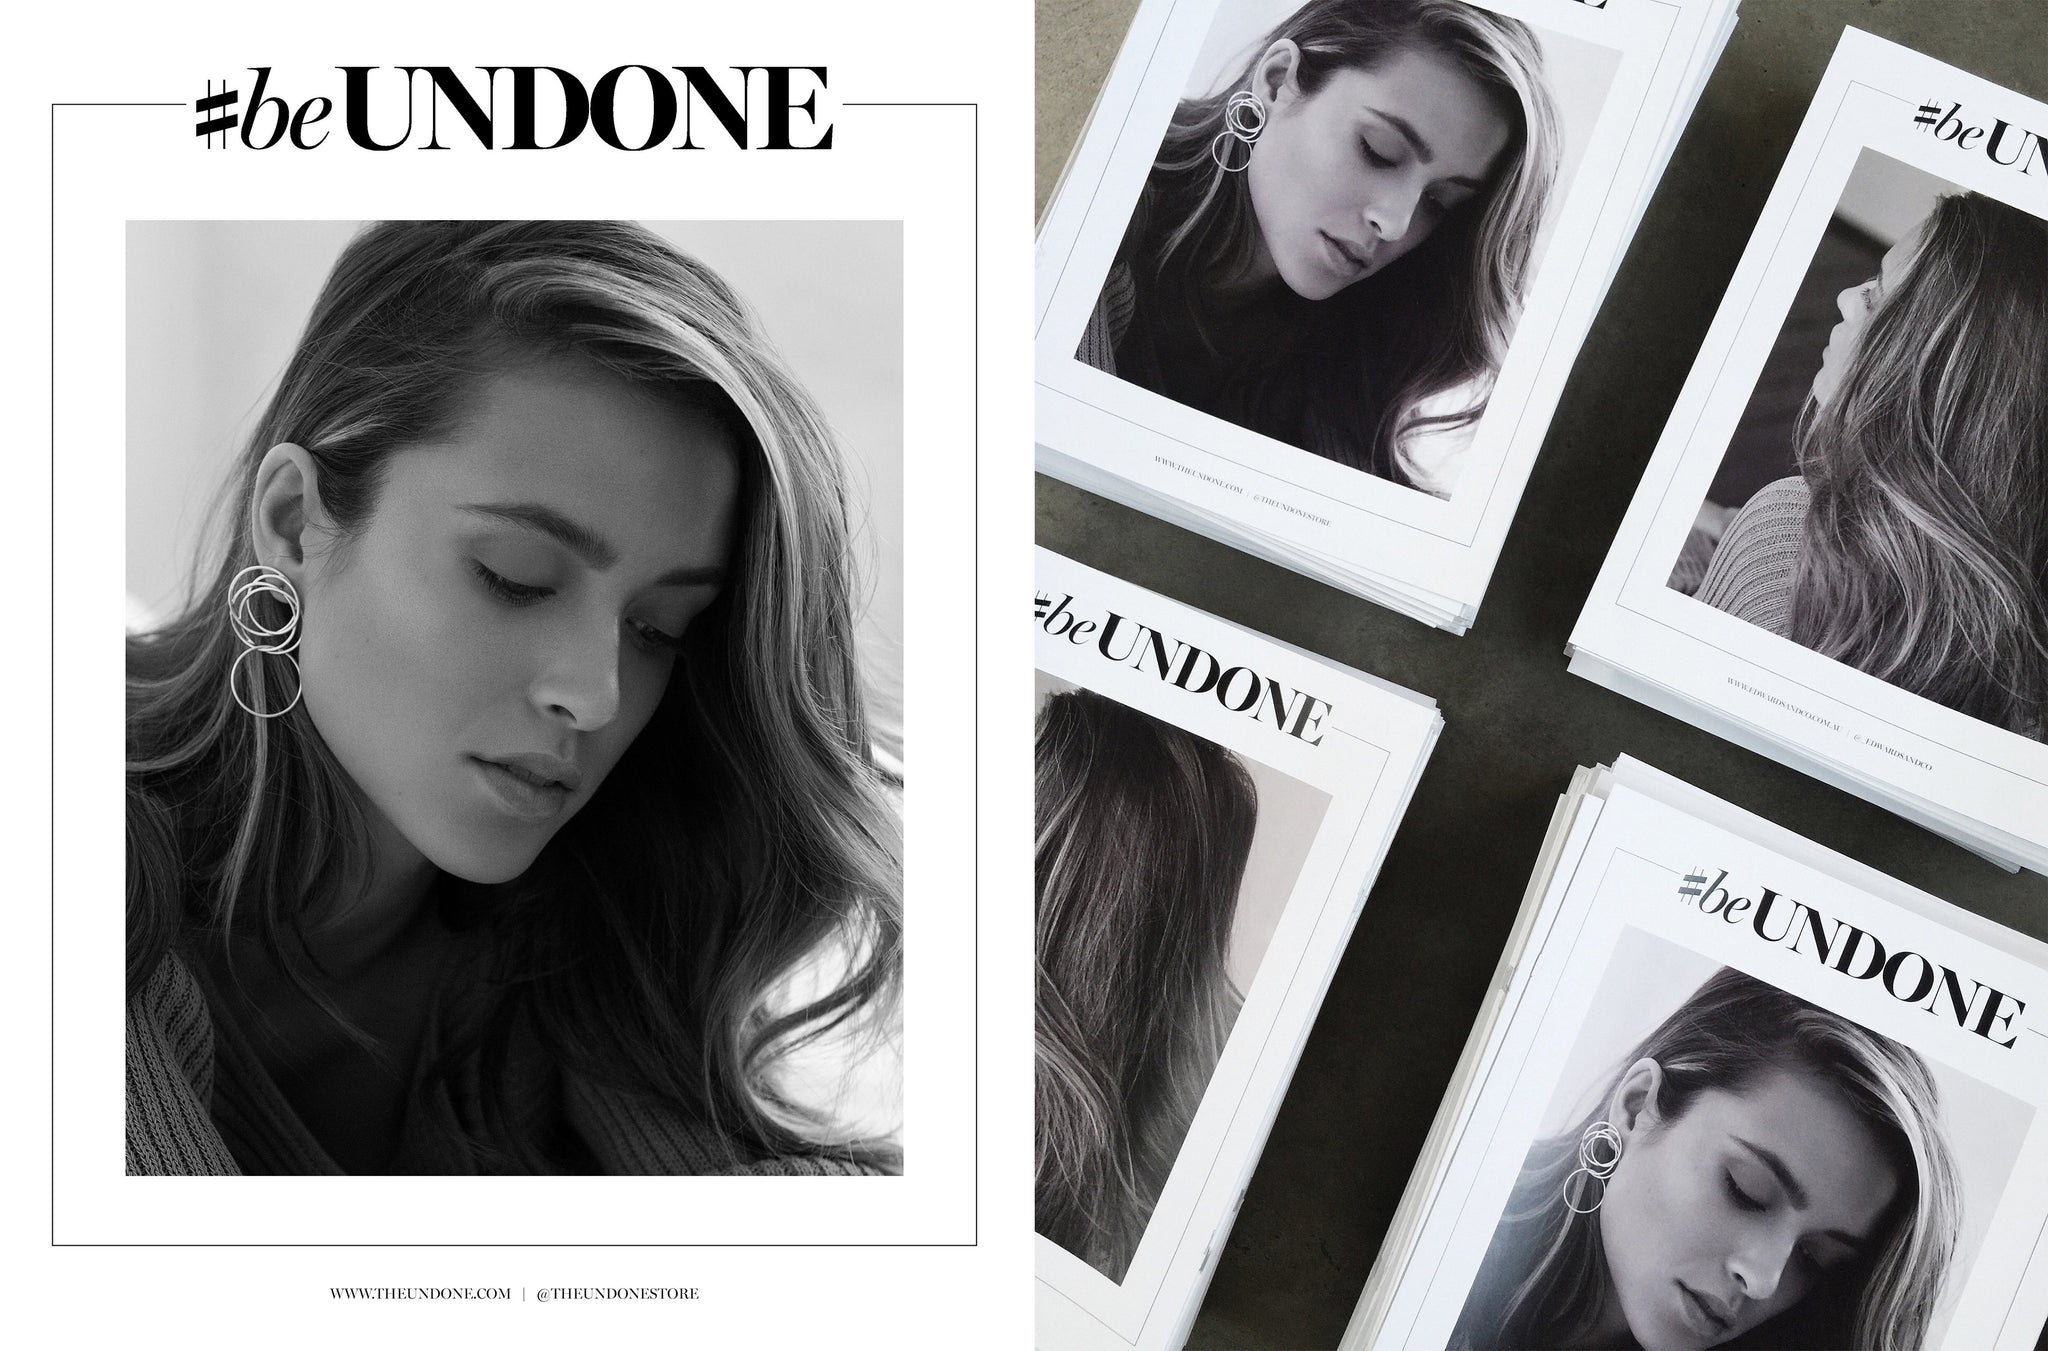 The UNDONE Magazine #beUNDONE